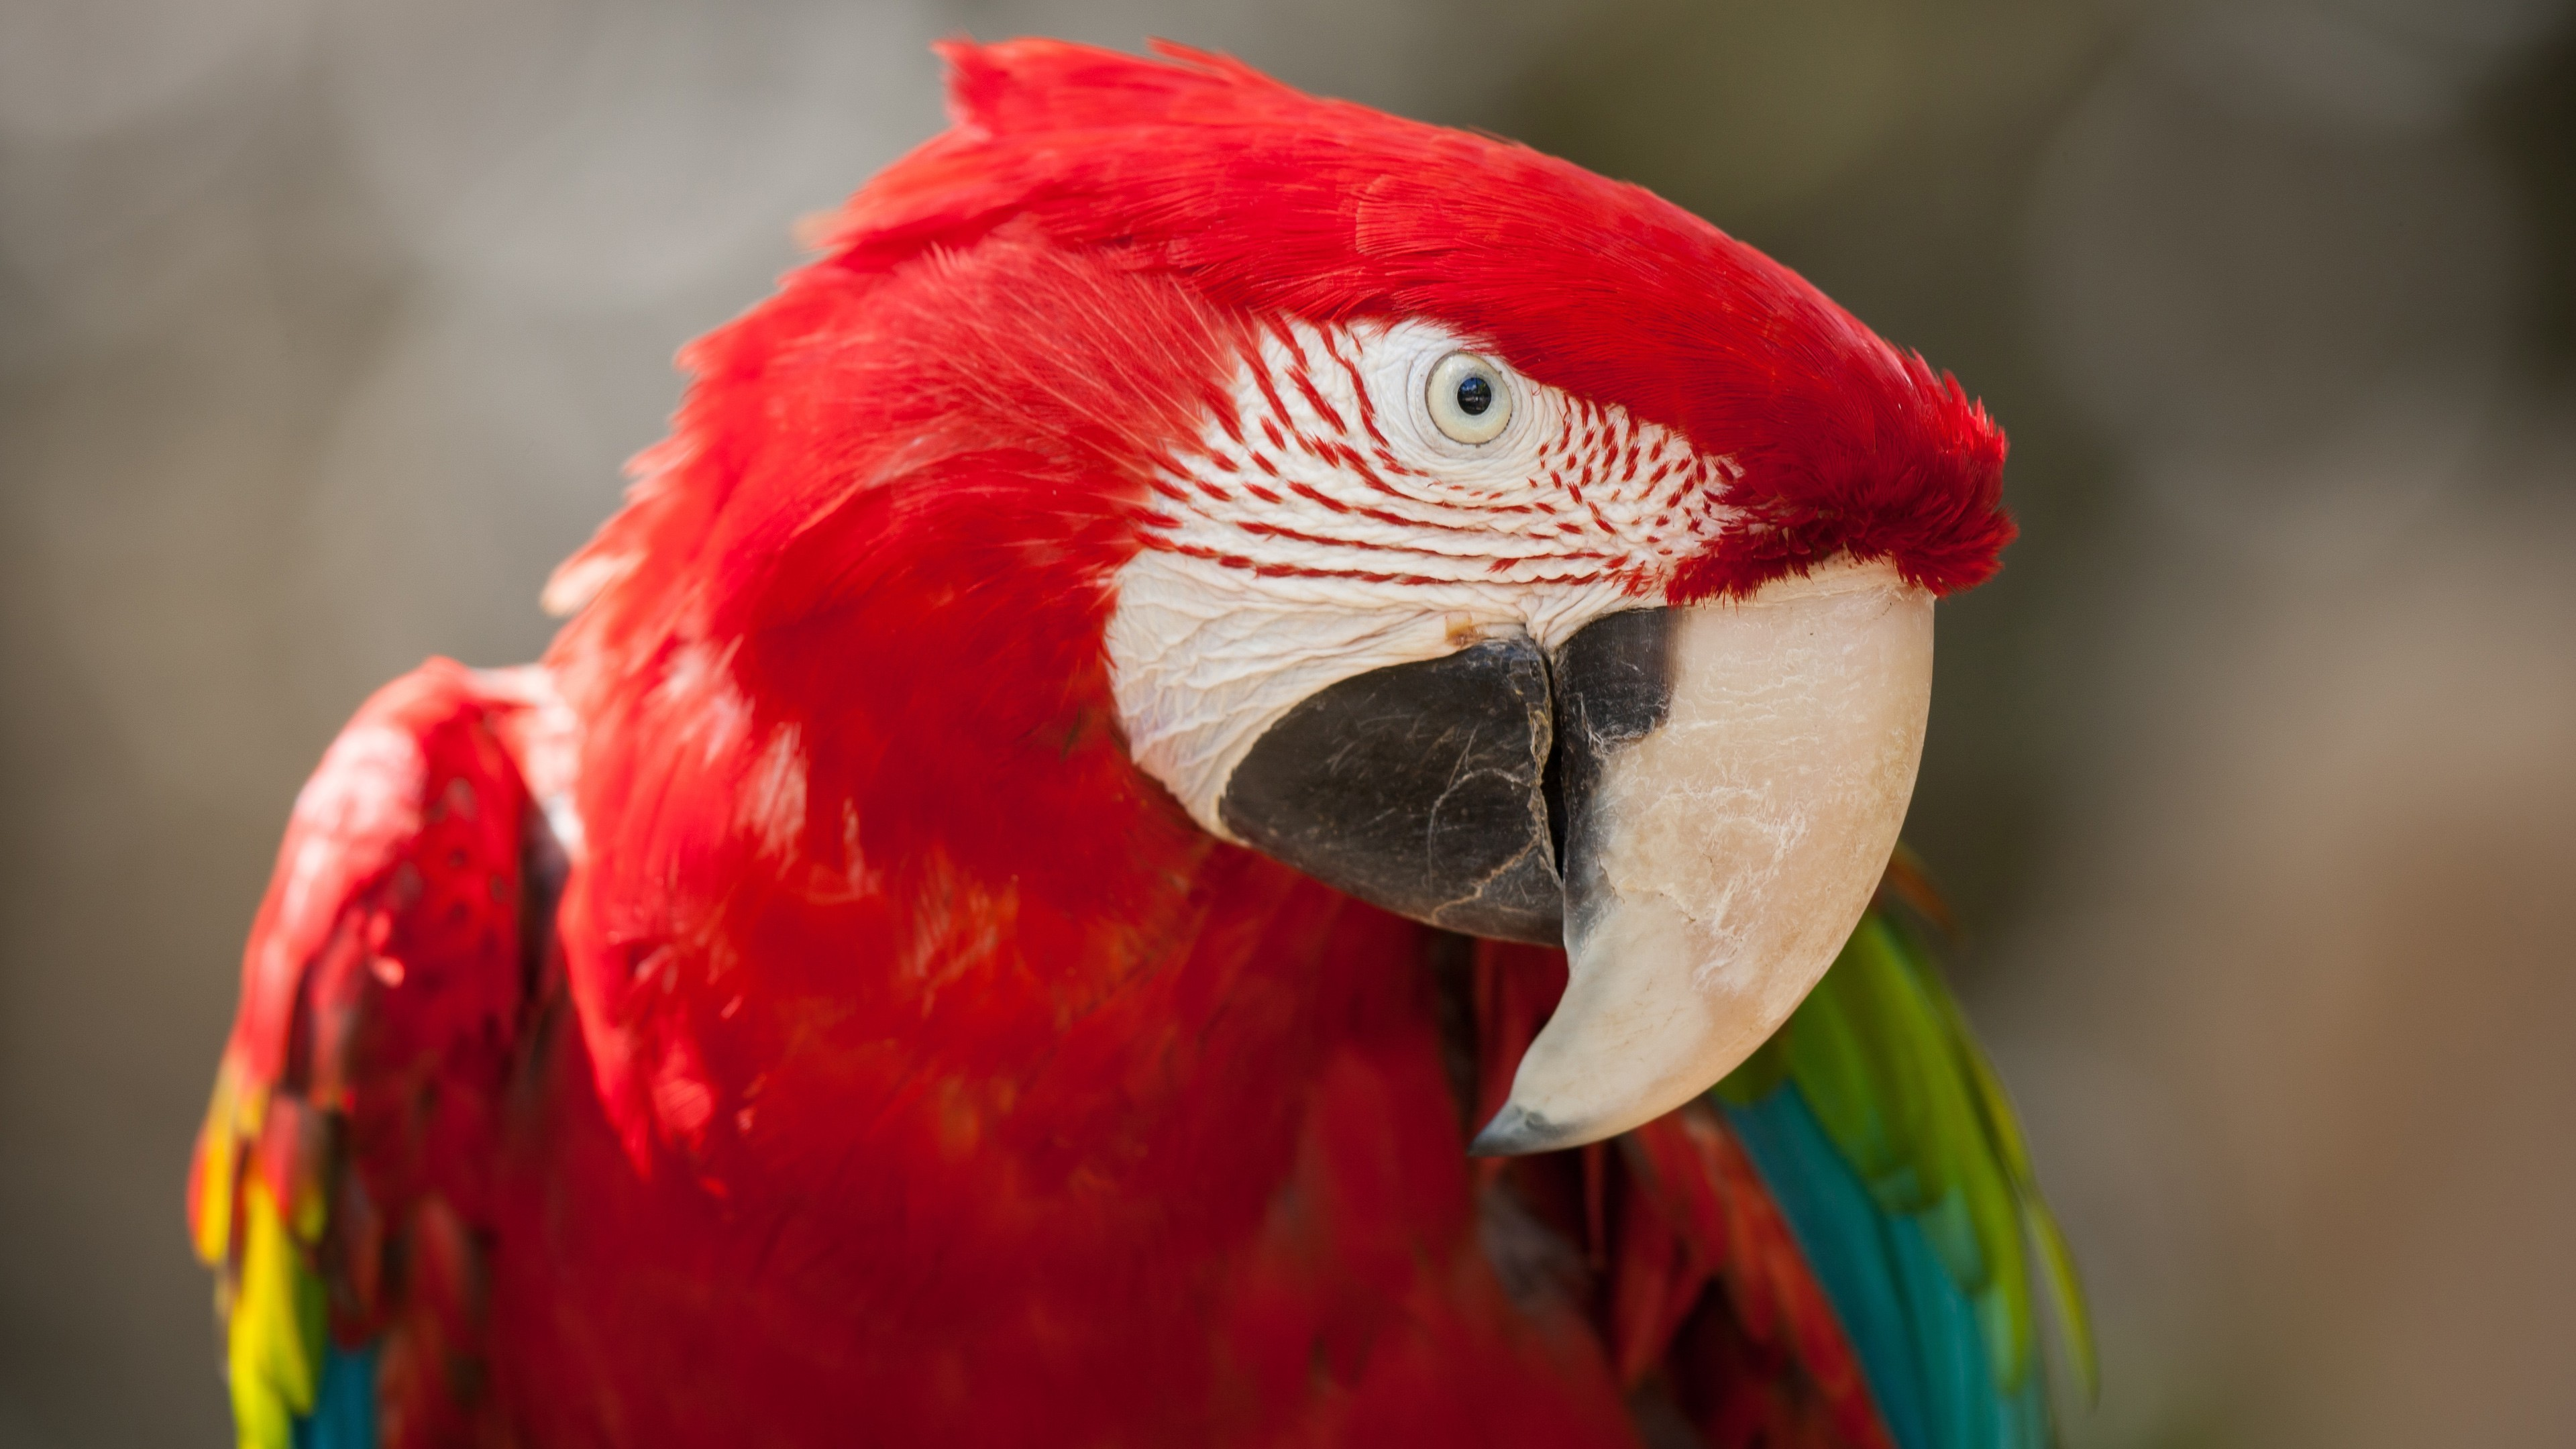 Hd Wallpapers With Quotes For Desktop Wallpaper Macaw Parrot Tropical Bird Red Animals 12484